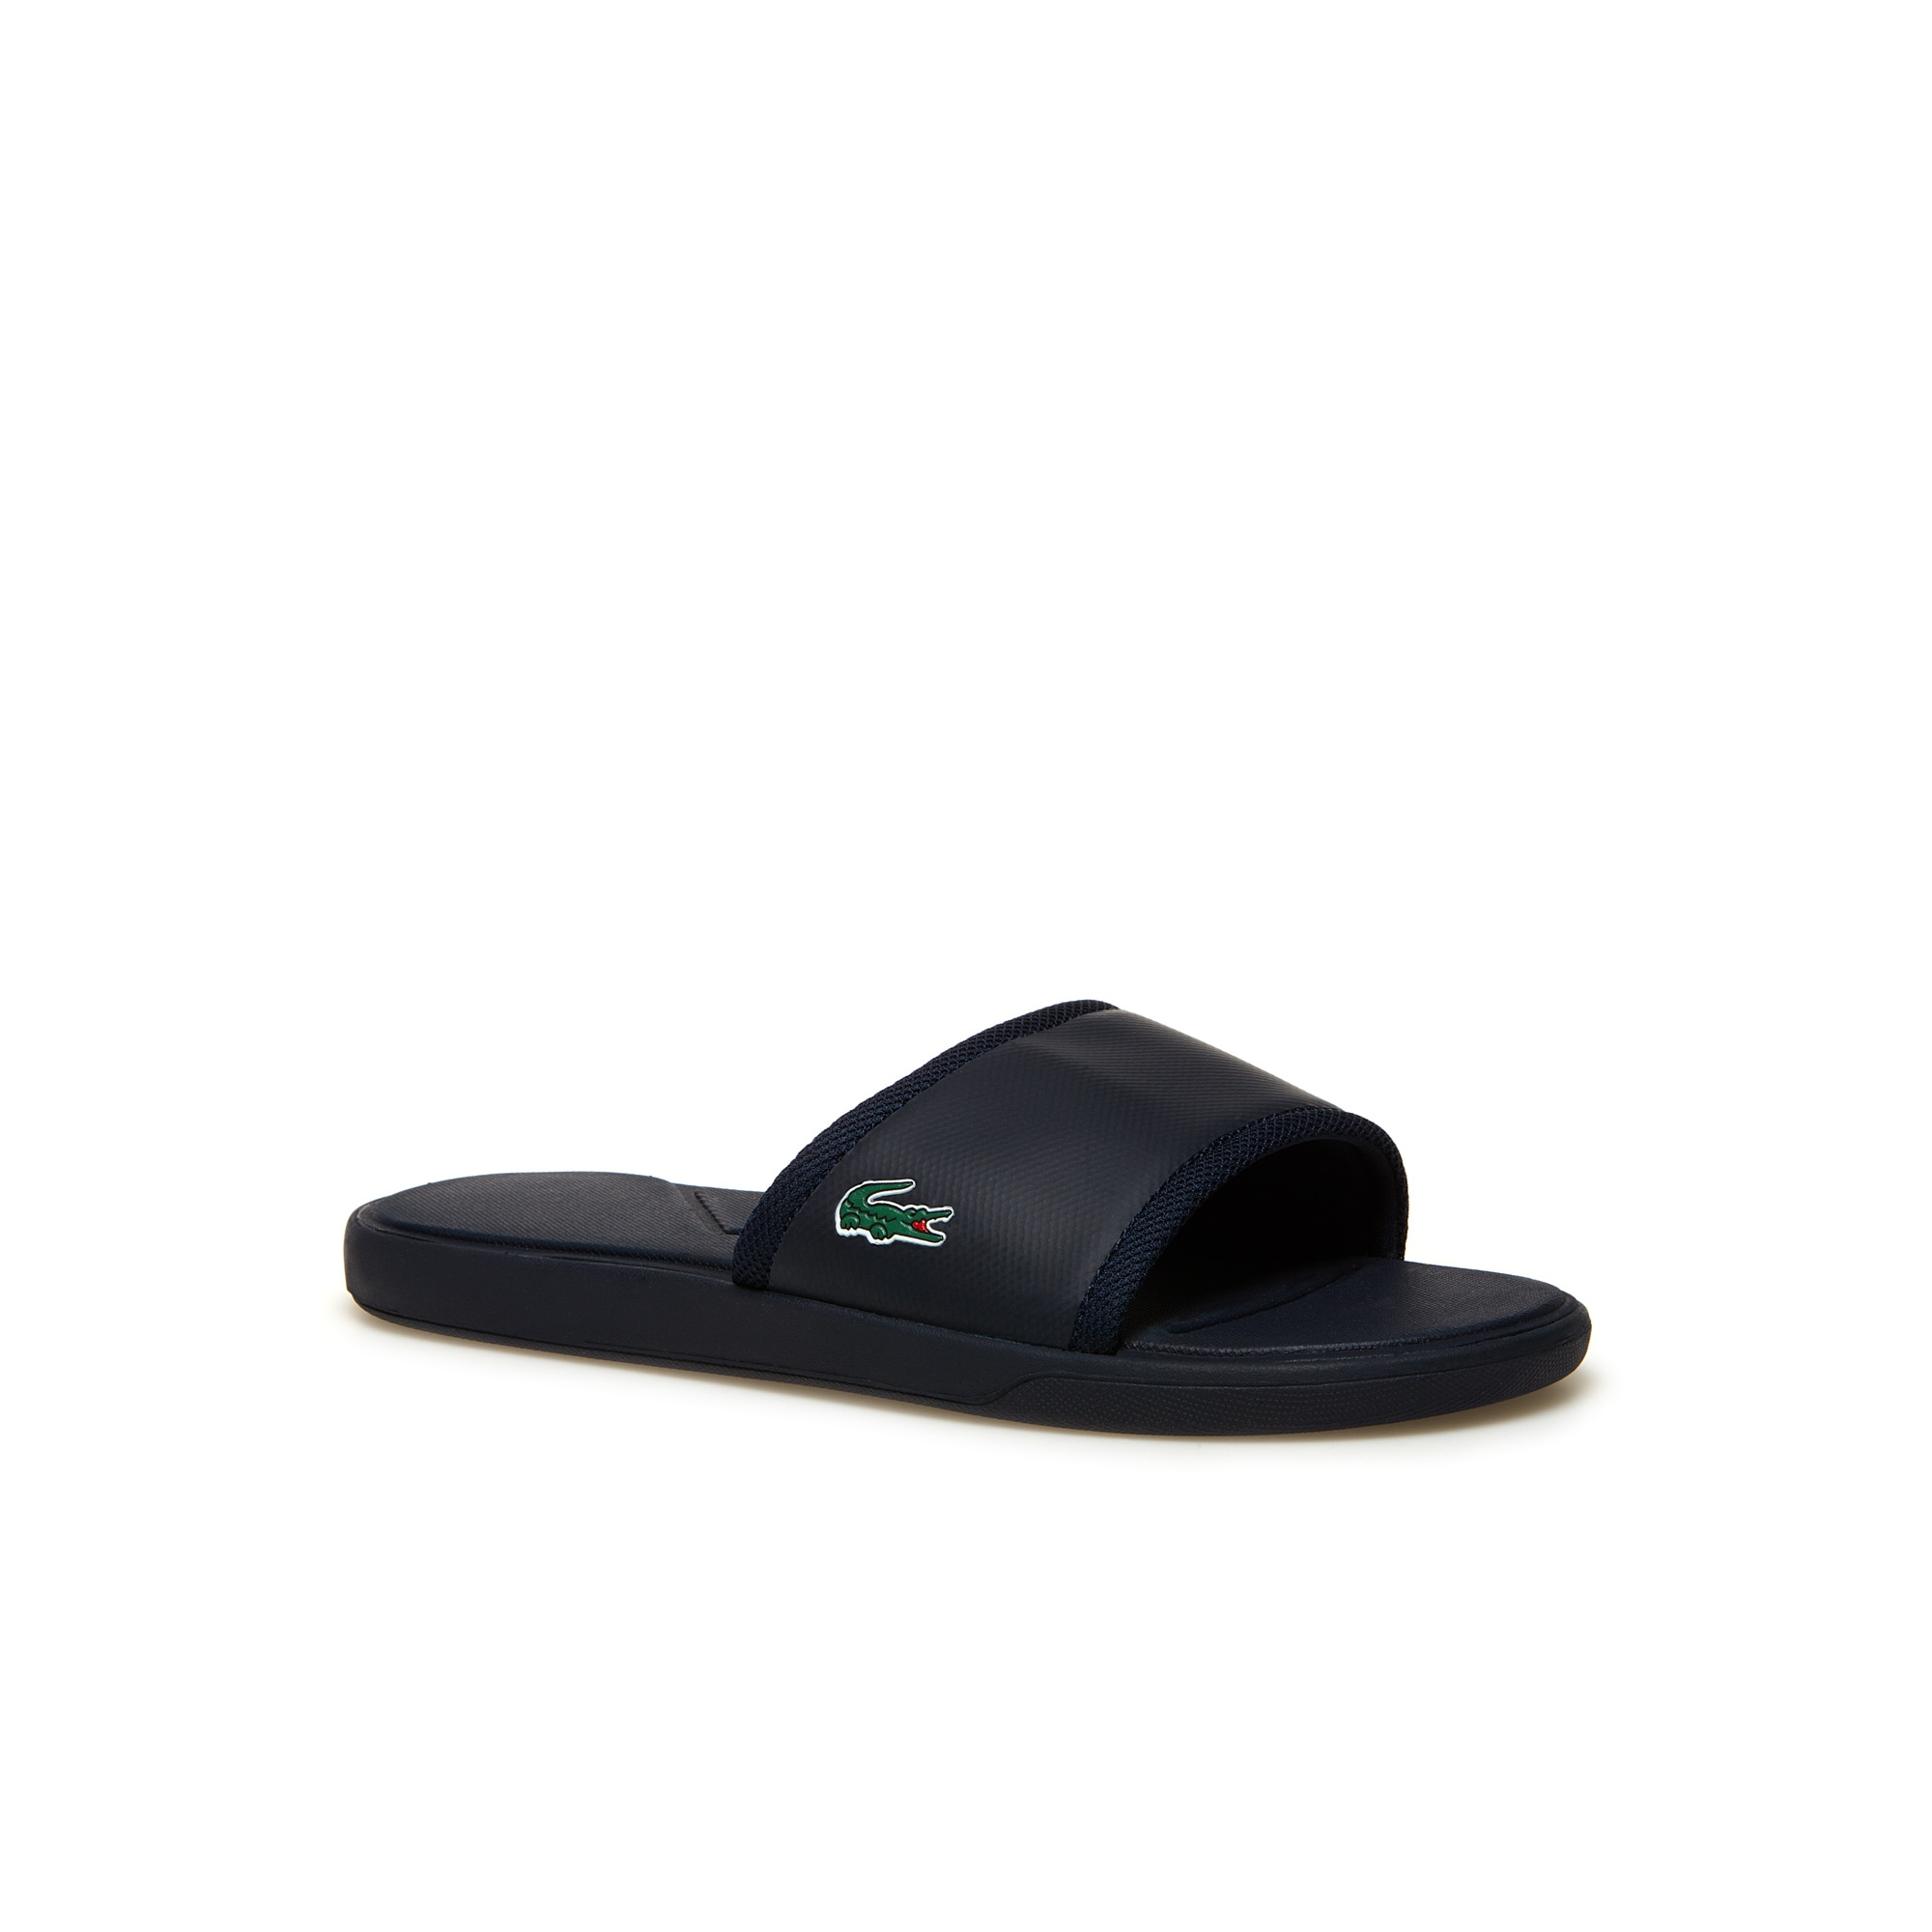 Men's L.30 Slide Sport Nautical Flip-Flops